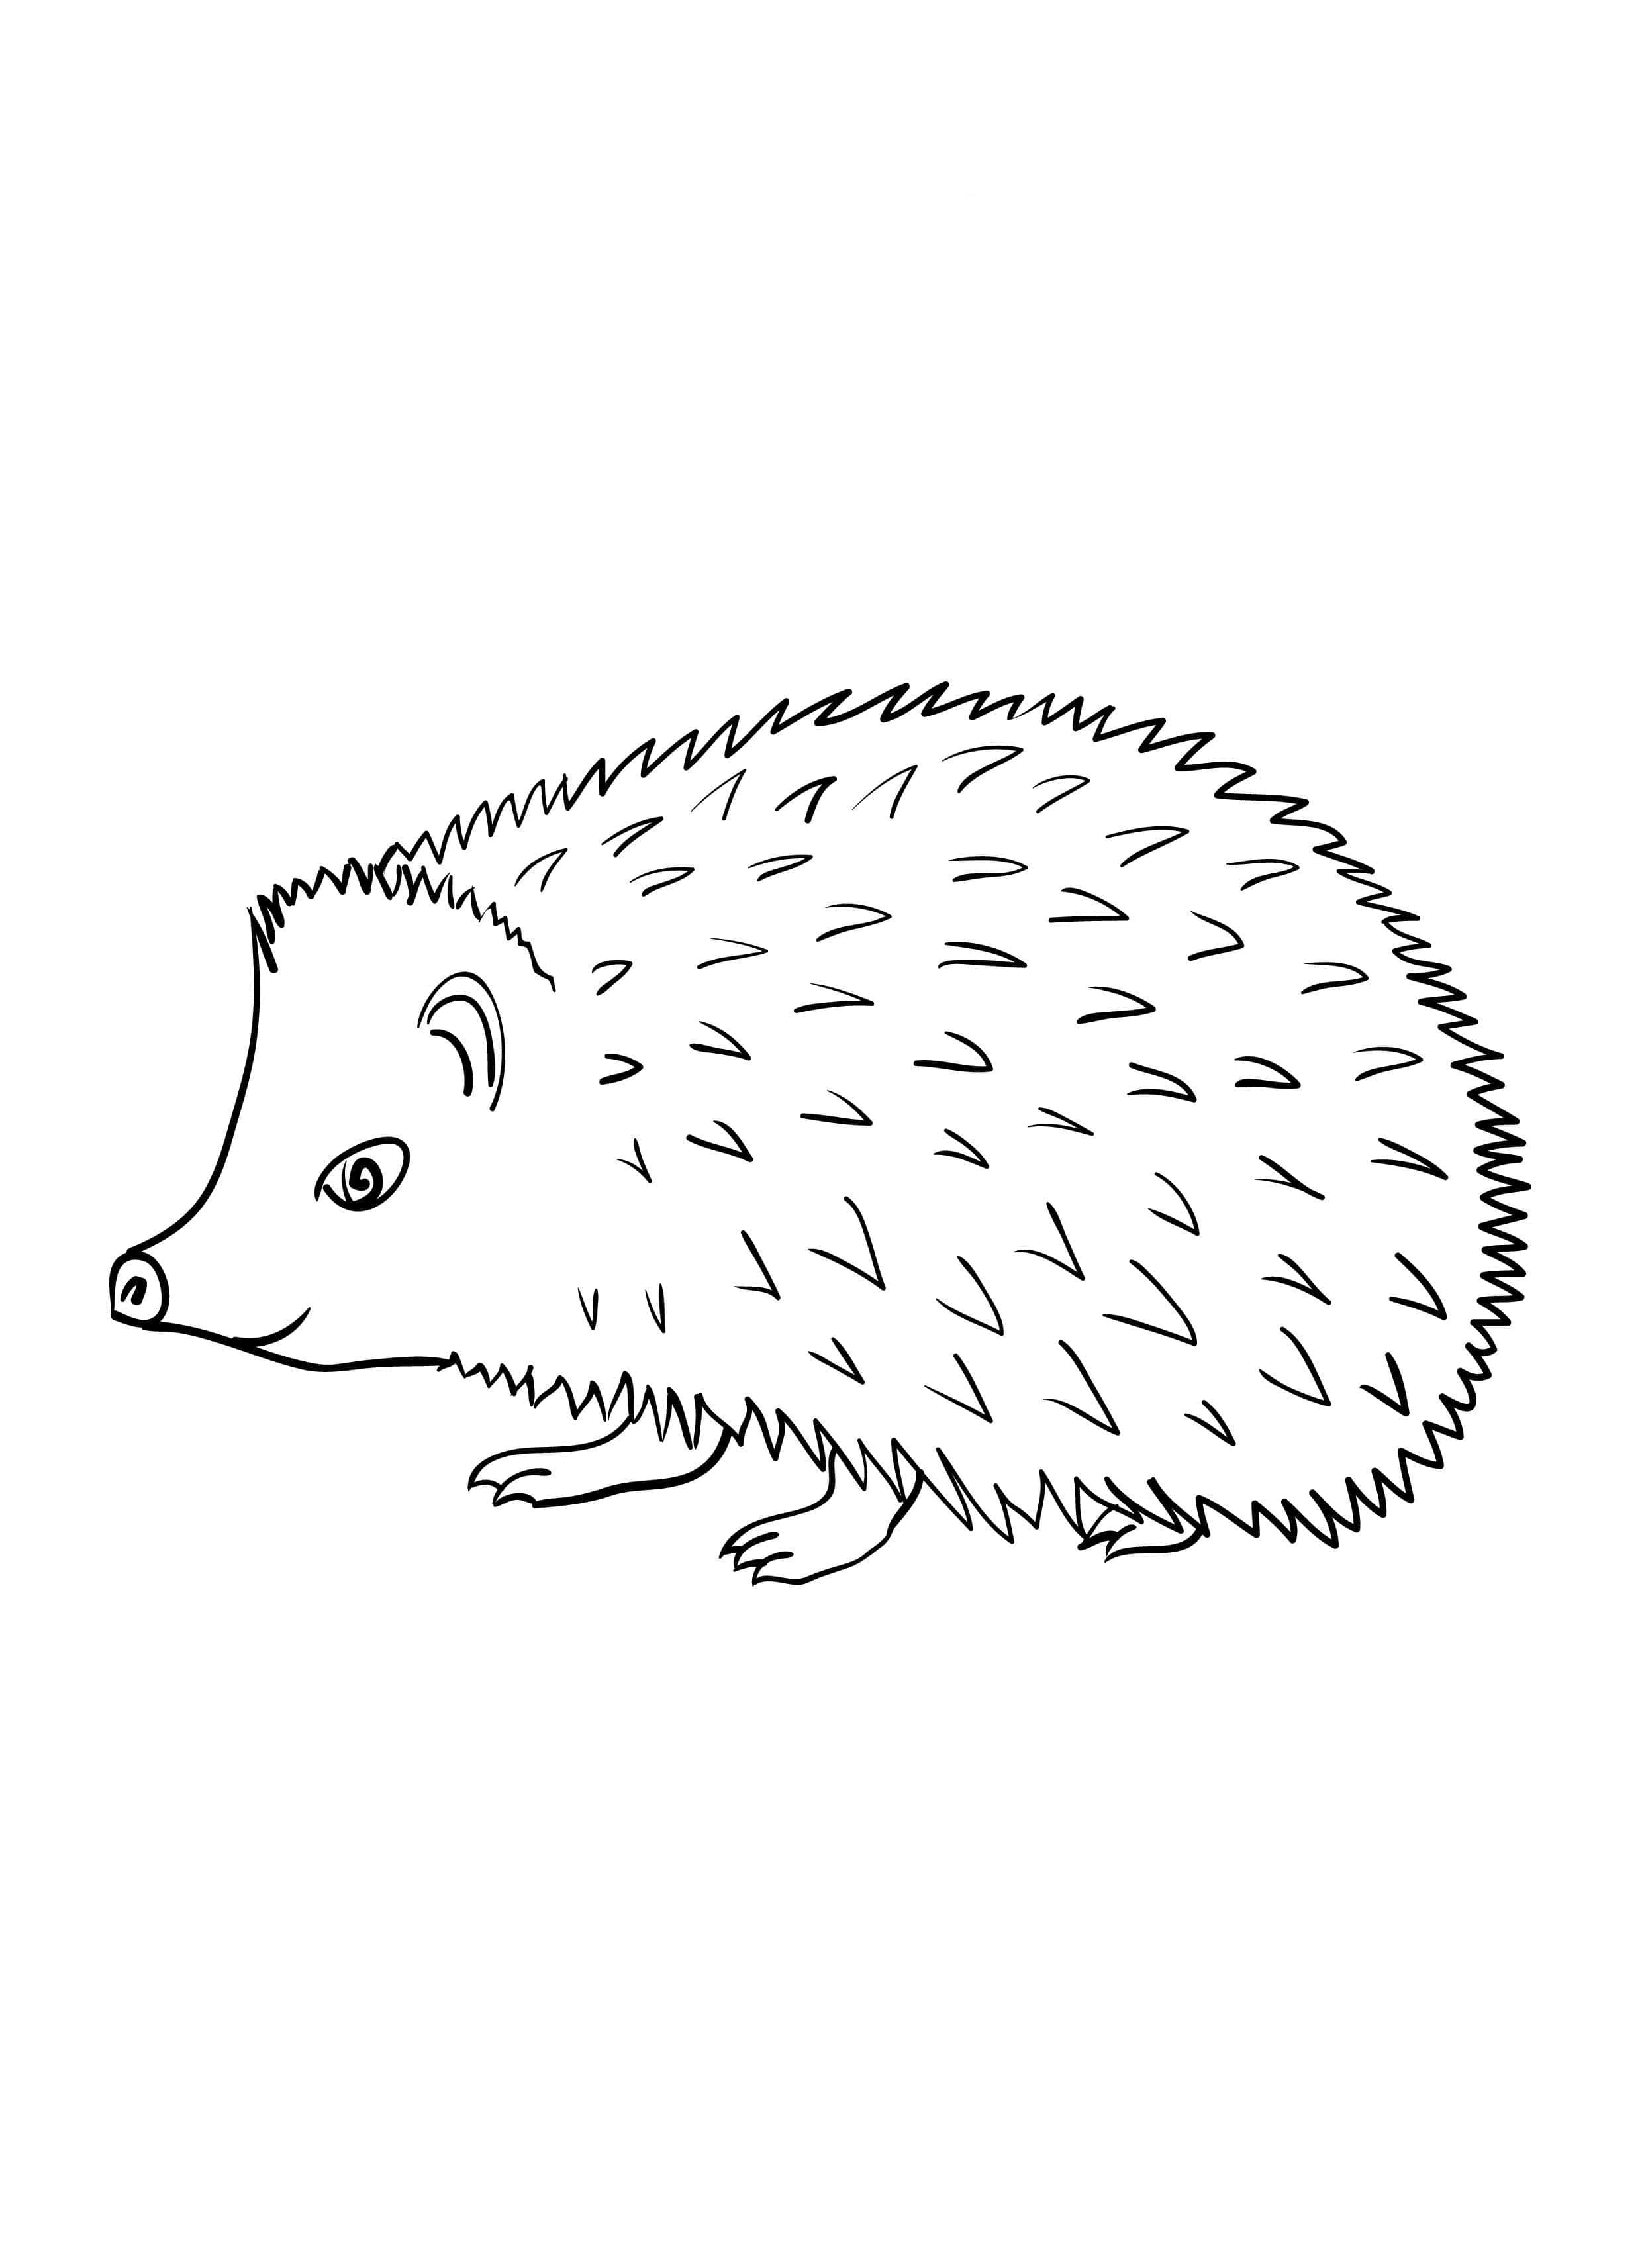 hedgehog coloring pages printable hedgehog coloring picture coloring pages hedgehog pages printable coloring hedgehog